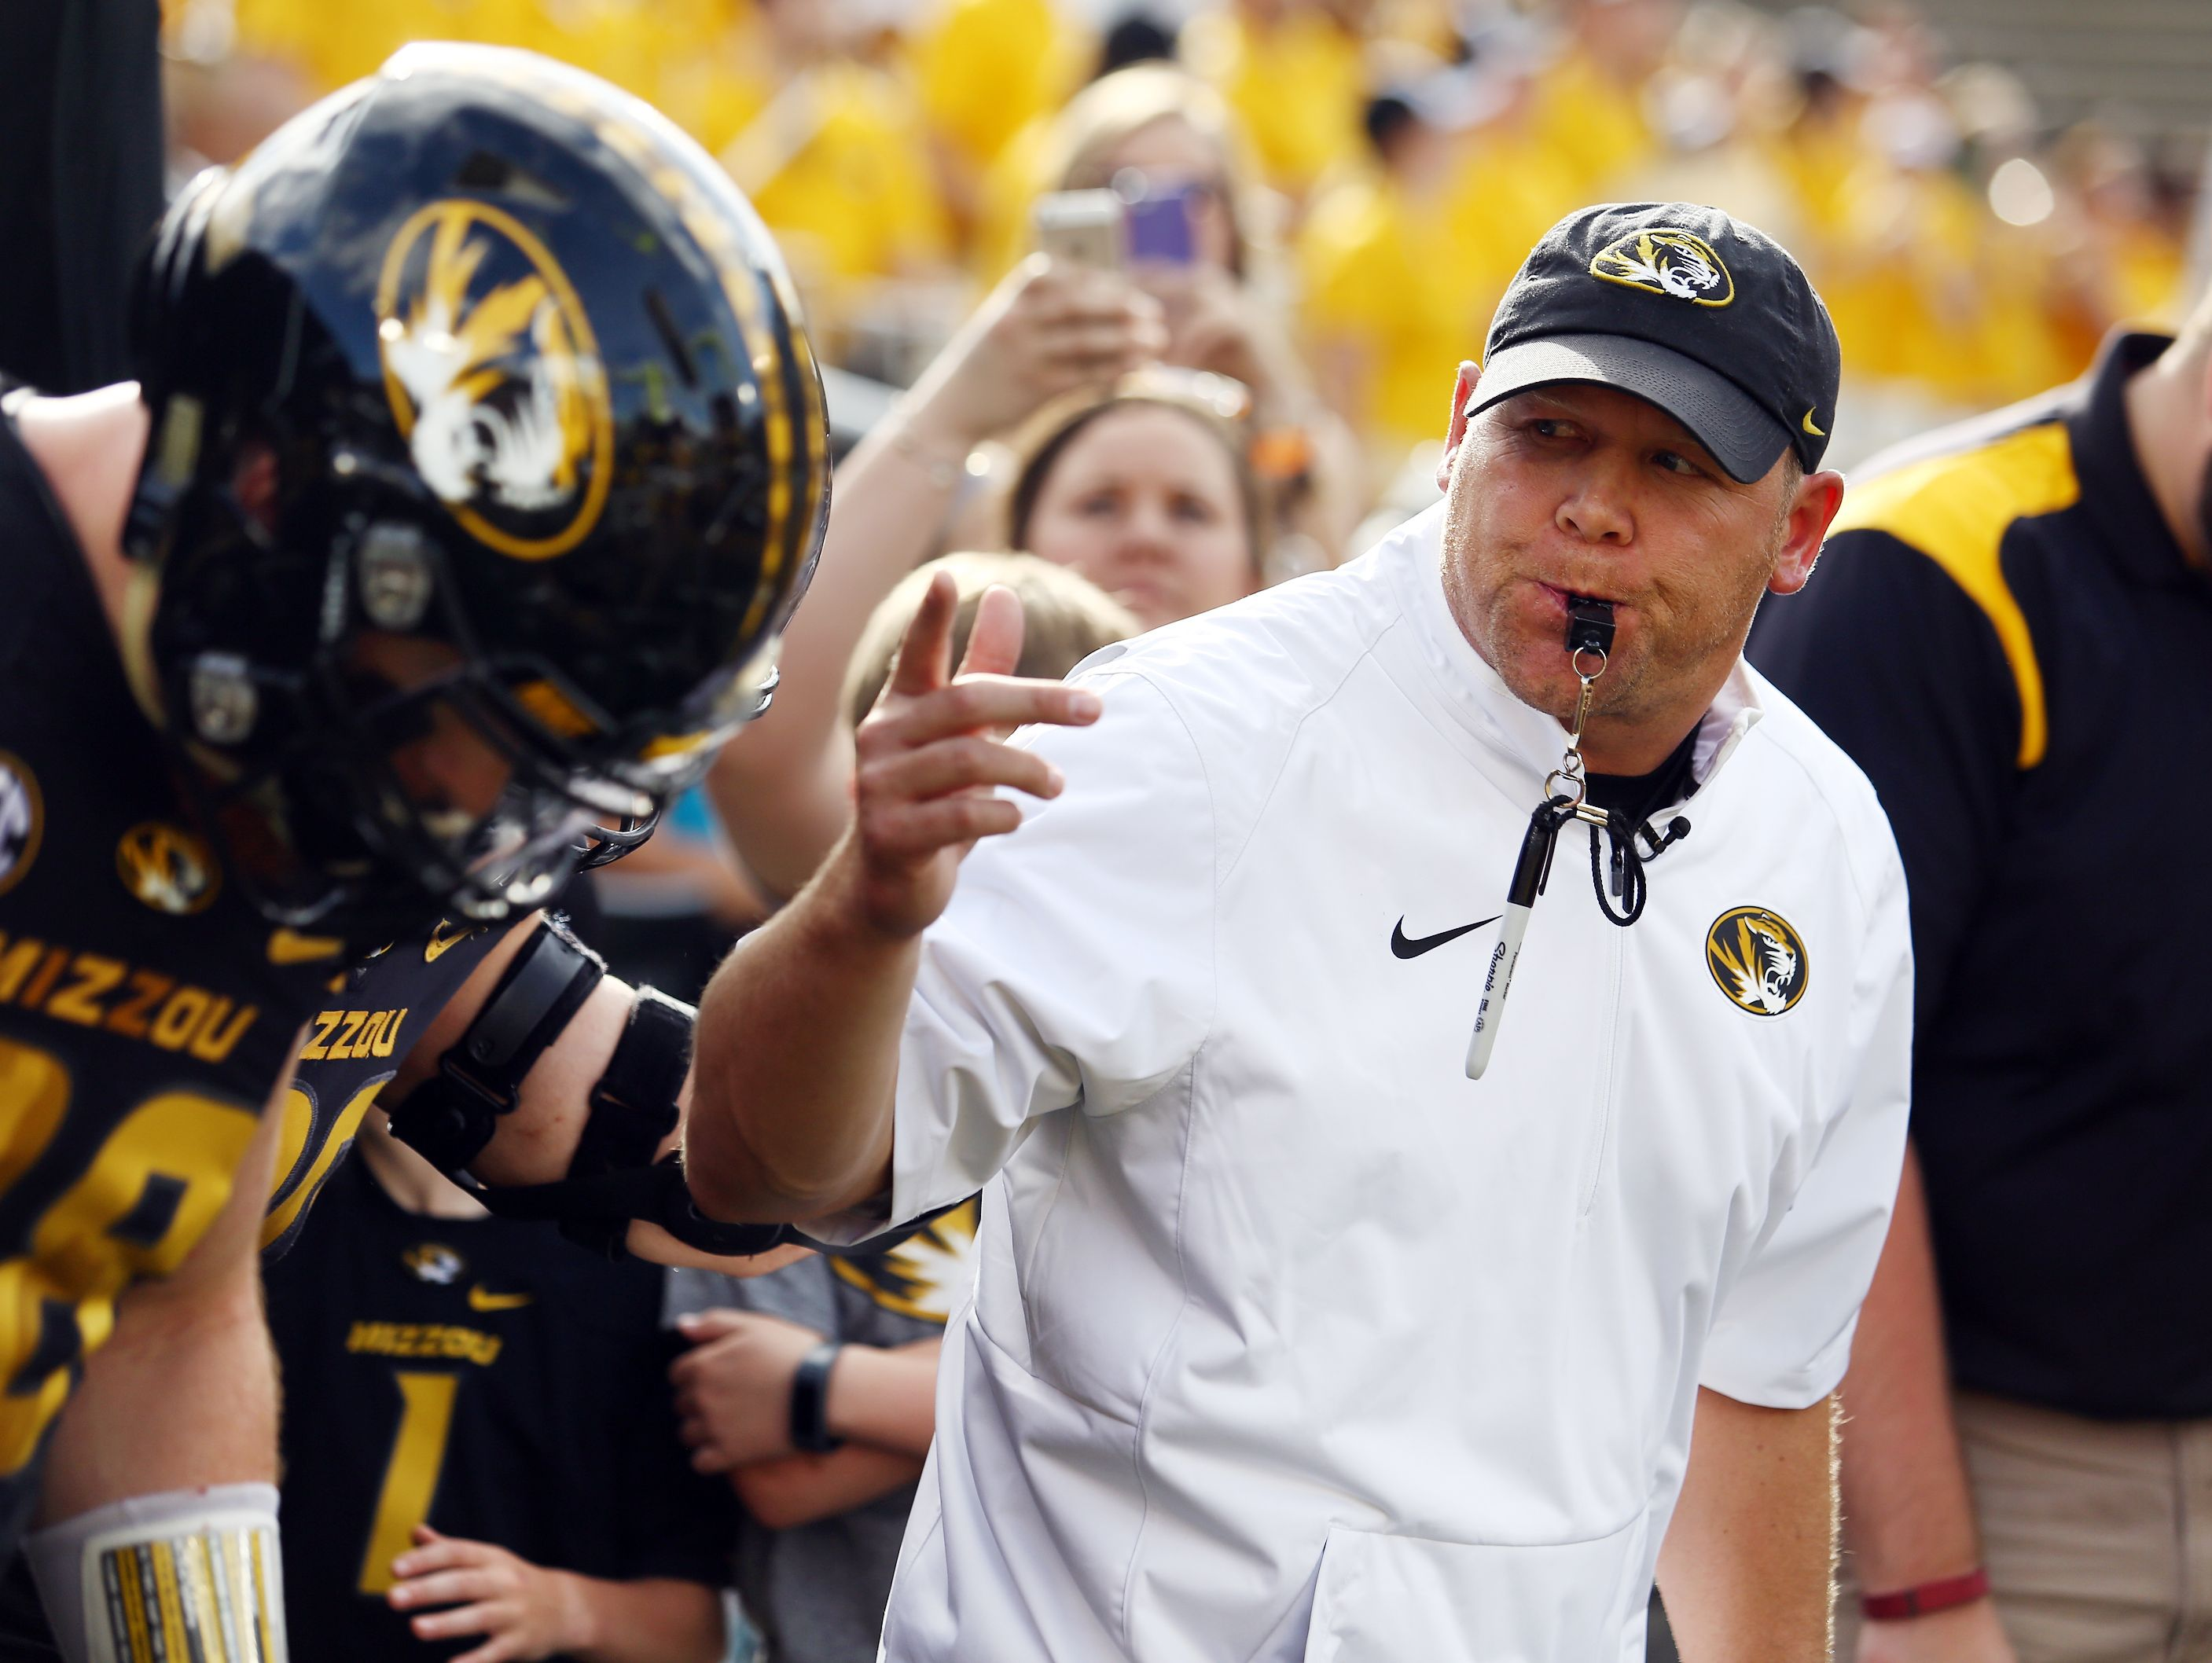 Missouri football coach Barry Odom leads the team onto the field for the Black and Gold spring game.